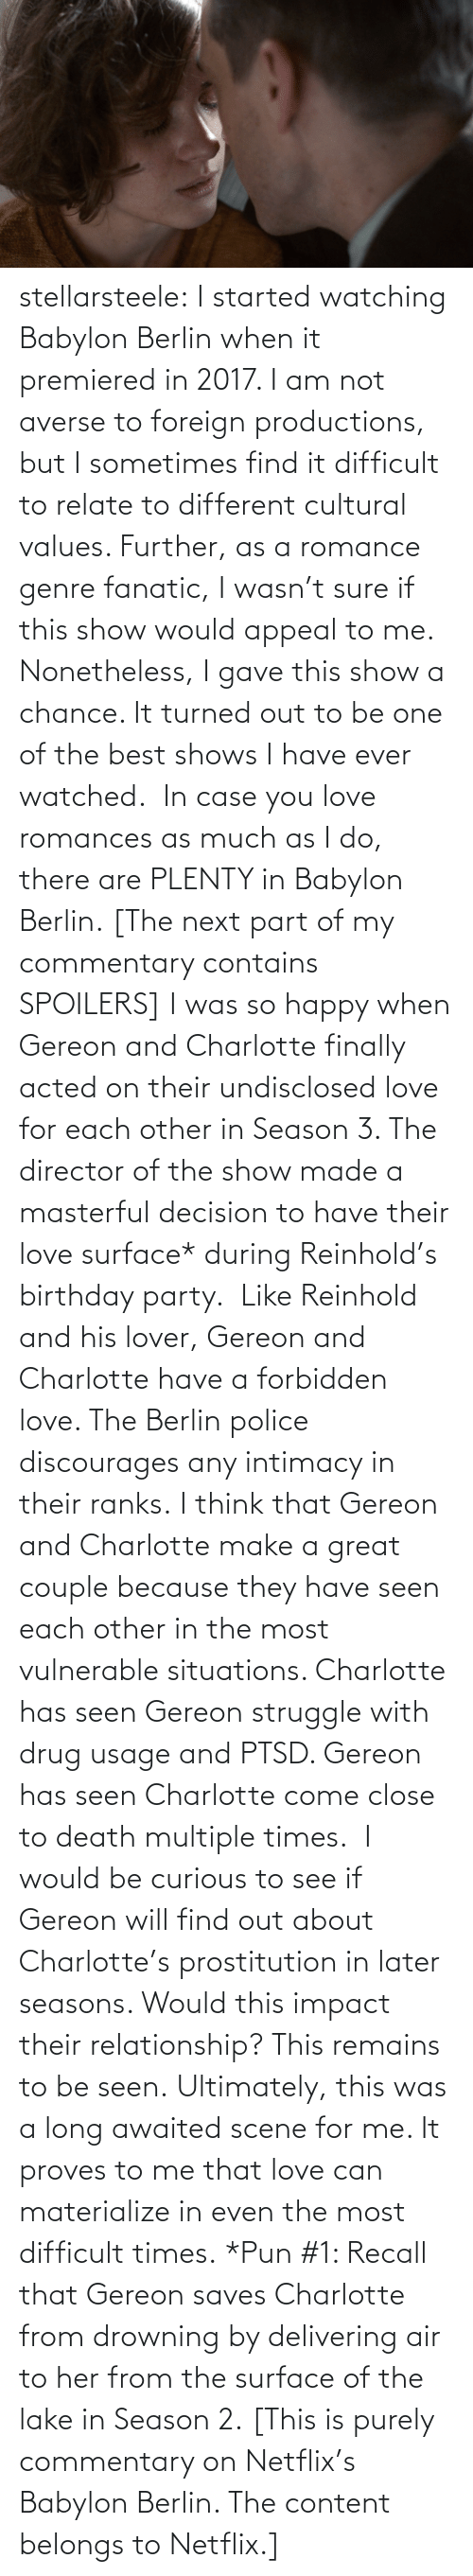 Season: stellarsteele: I started watching Babylon Berlin when it premiered in 2017. I am not averse to foreign productions, but I sometimes find it difficult to relate to different cultural values. Further, as a romance genre fanatic, I wasn't sure if this show would appeal to me.  Nonetheless, I gave this show a chance. It turned out to be one of the best shows I have ever watched.  In case you love romances as much as I do, there are PLENTY in Babylon Berlin. [The next part of my commentary contains SPOILERS] I was so happy when Gereon and Charlotte finally acted on their undisclosed love for each other in Season 3. The director of the show made a masterful decision to have their love surface* during Reinhold's birthday party.  Like Reinhold and his lover, Gereon and Charlotte have a forbidden love. The Berlin police discourages any intimacy in their ranks. I think that Gereon and Charlotte make a great couple because they have seen each other in the most vulnerable situations. Charlotte has seen Gereon struggle with drug usage and PTSD. Gereon has seen Charlotte come close to death multiple times.  I would be curious to see if Gereon will find out about Charlotte's prostitution in later seasons. Would this impact their relationship? This remains to be seen. Ultimately, this was a long awaited scene for me. It proves to me that love can materialize in even the most difficult times. *Pun #1: Recall that Gereon saves Charlotte from drowning by delivering air to her from the surface of the lake in Season 2. [This is purely commentary on Netflix's Babylon Berlin. The content belongs to Netflix.]